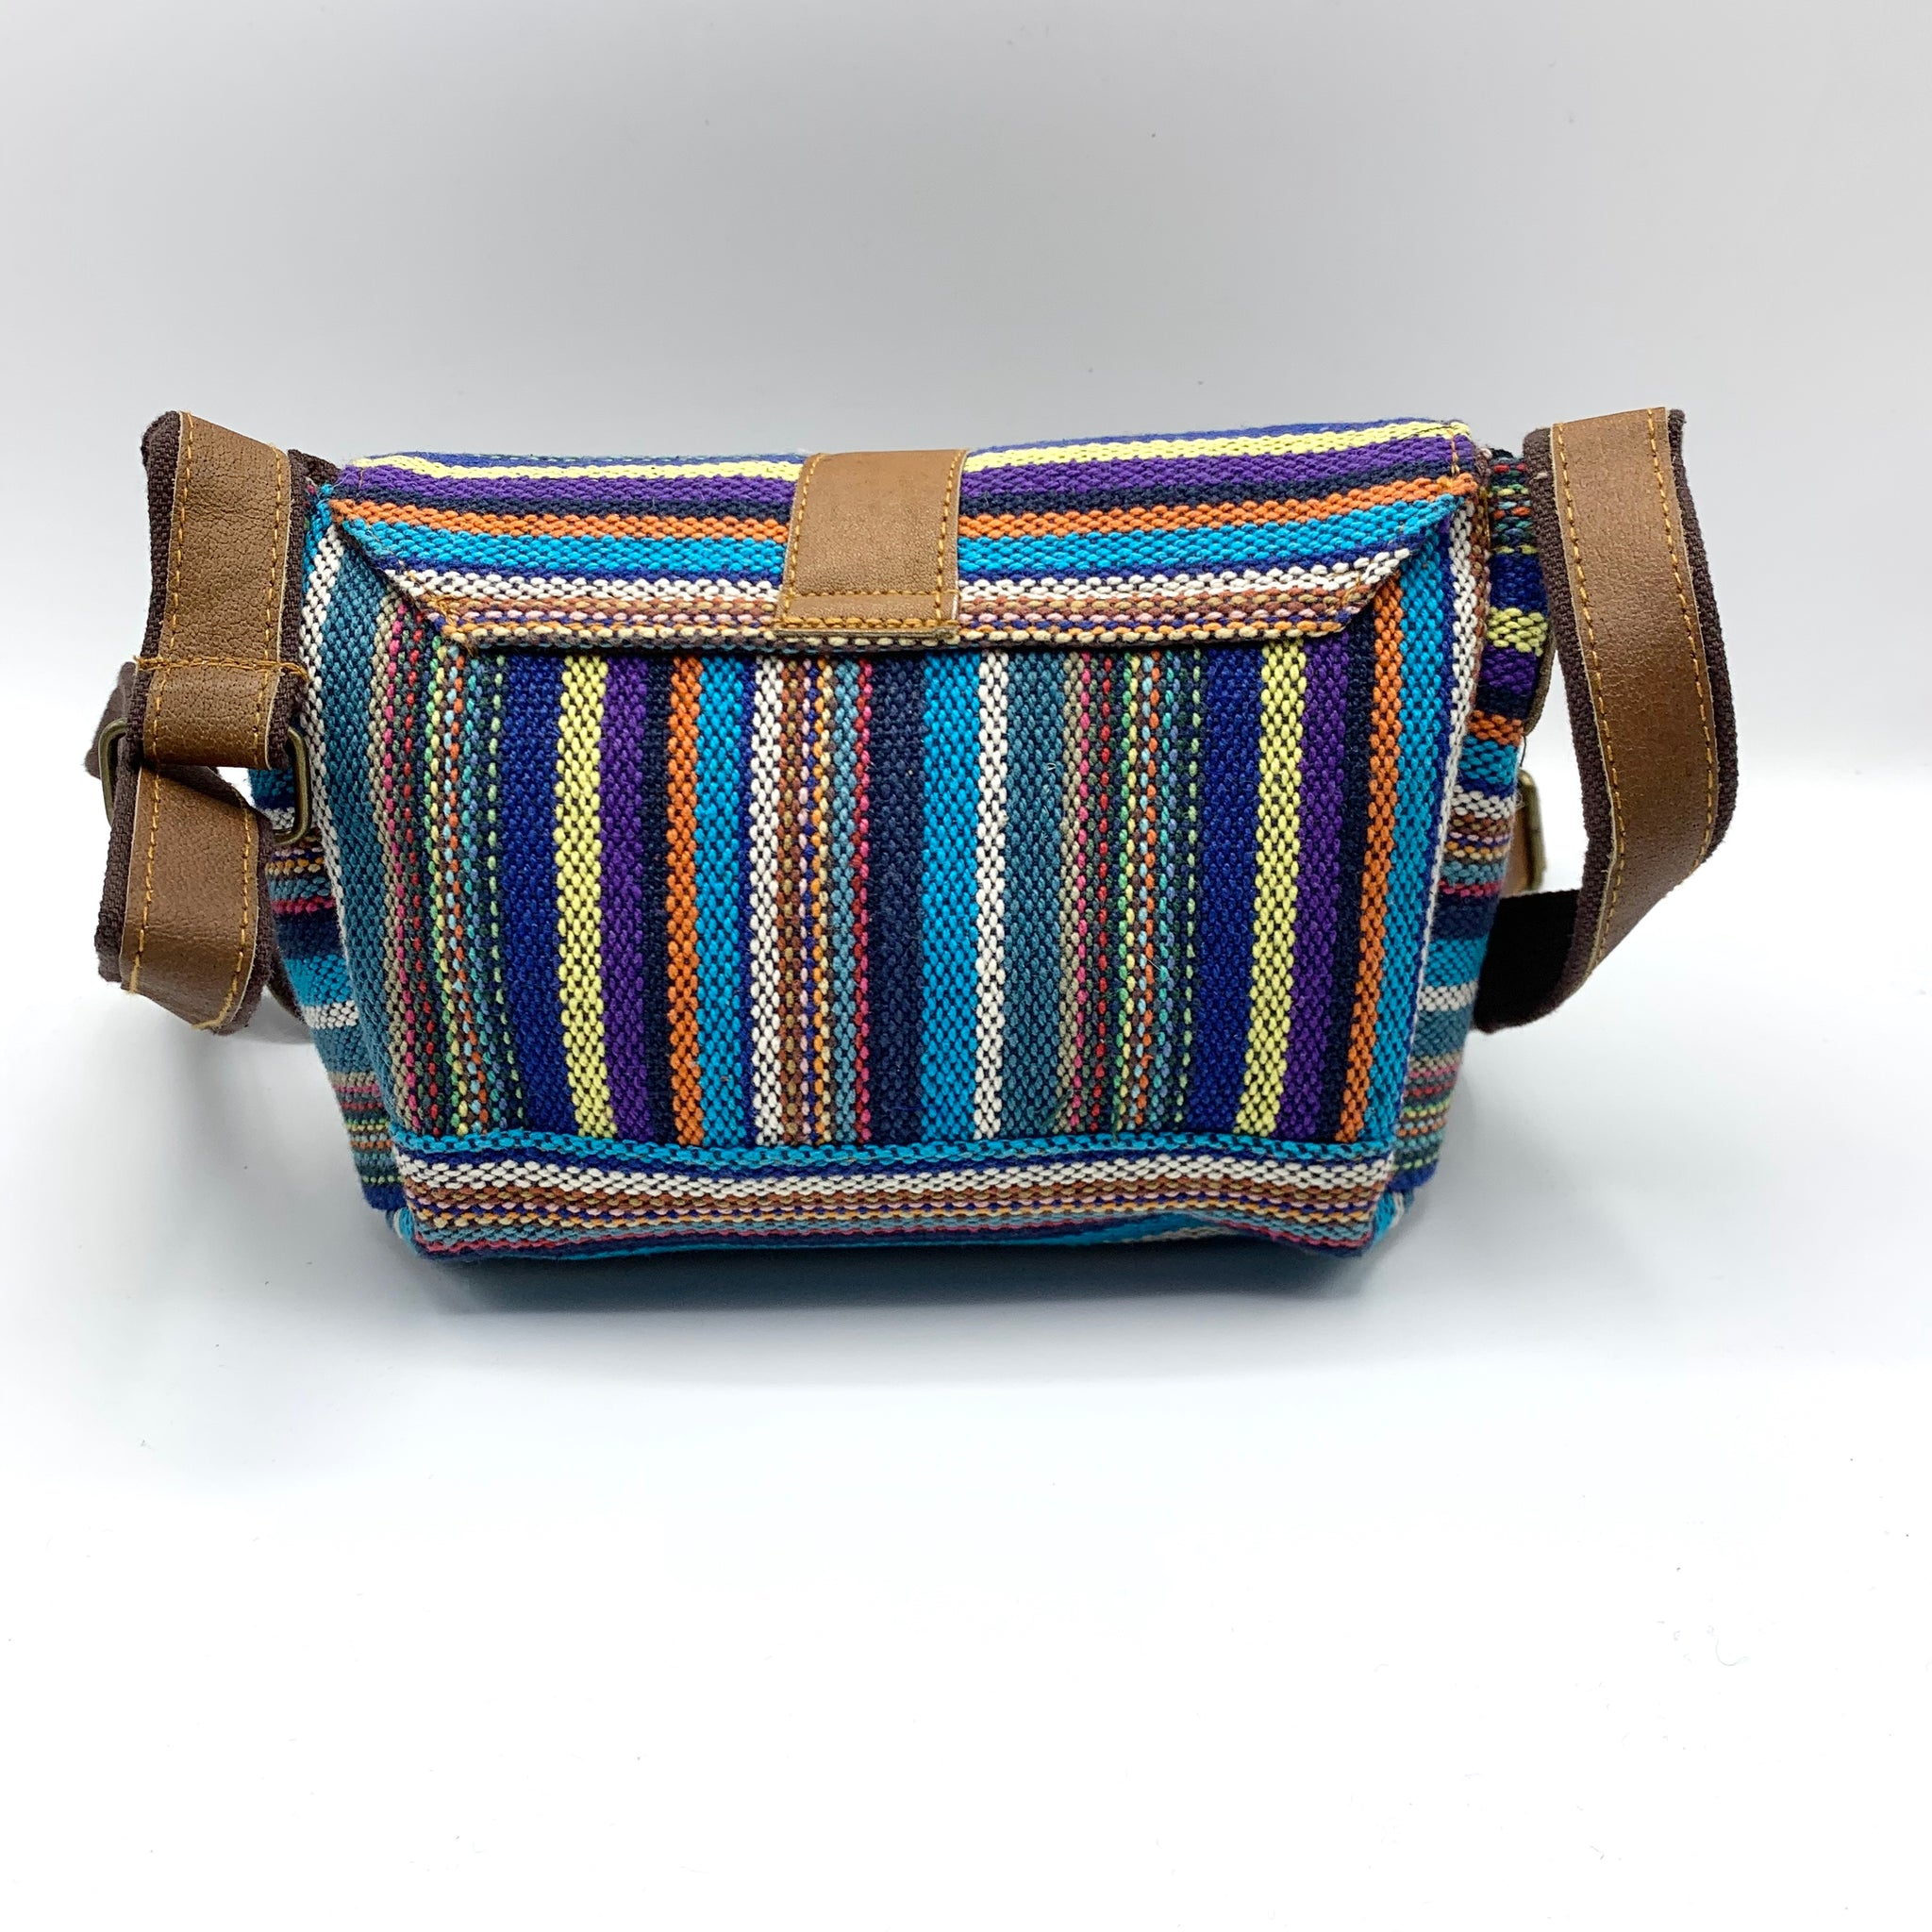 Cute & Colorful - Cotton & Leather Crossbody